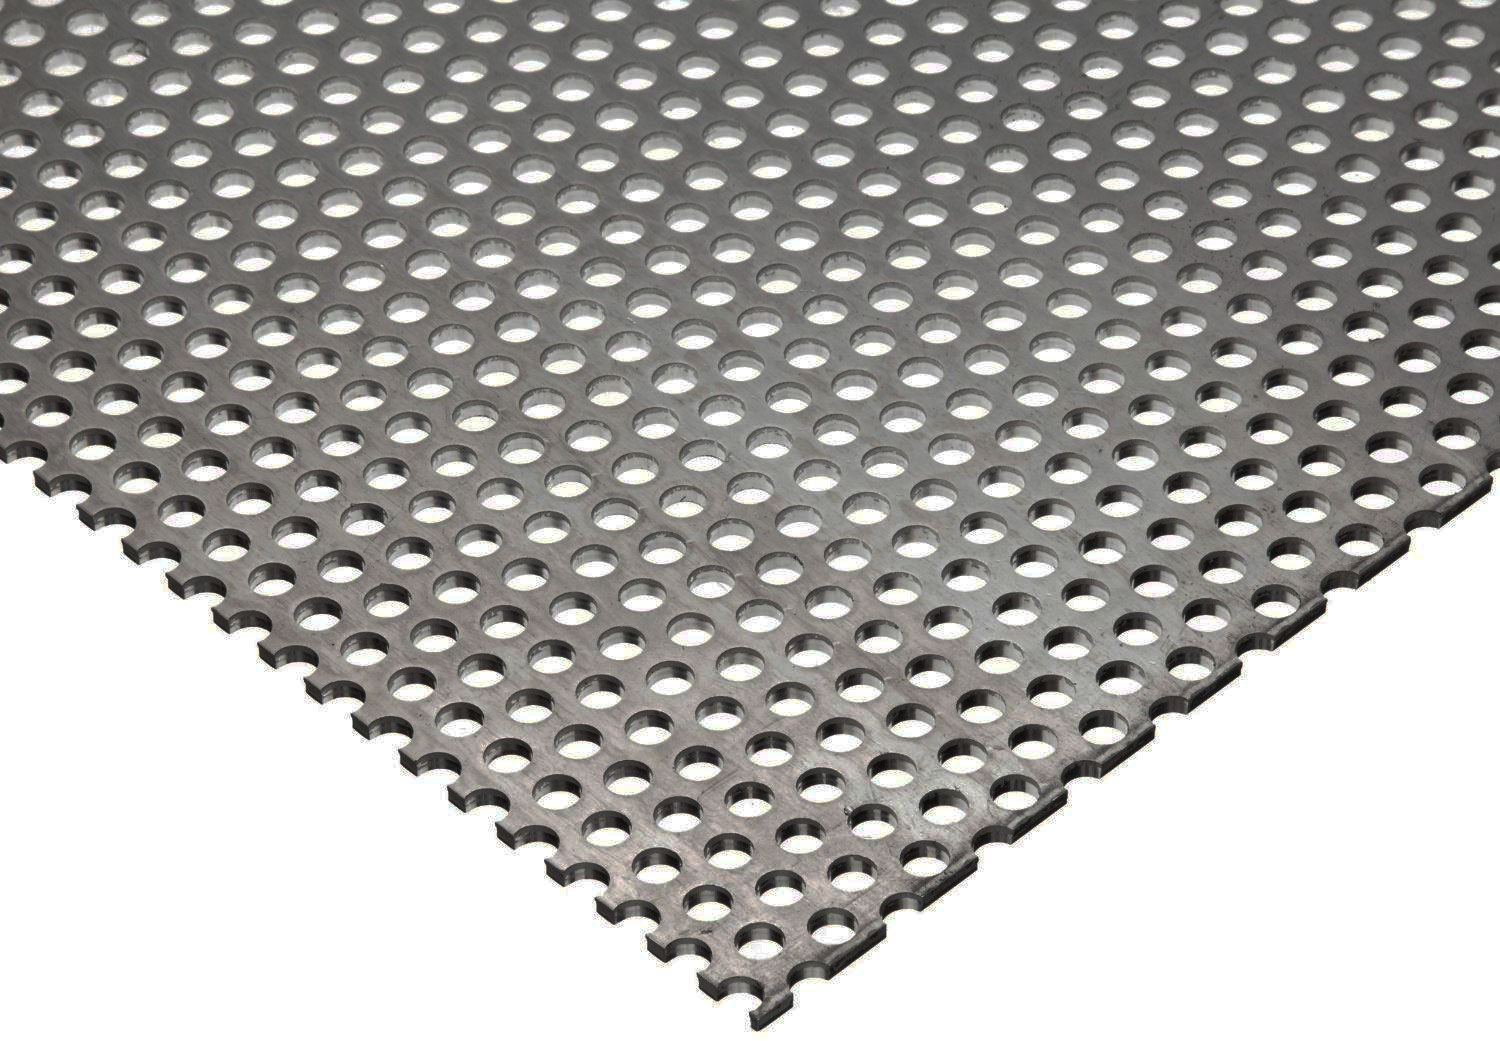 Online Metal Supply 304 Stainless Steel Perforated Sheet .035' (20 ga.) x 8' x 12' - 1/8 Holes